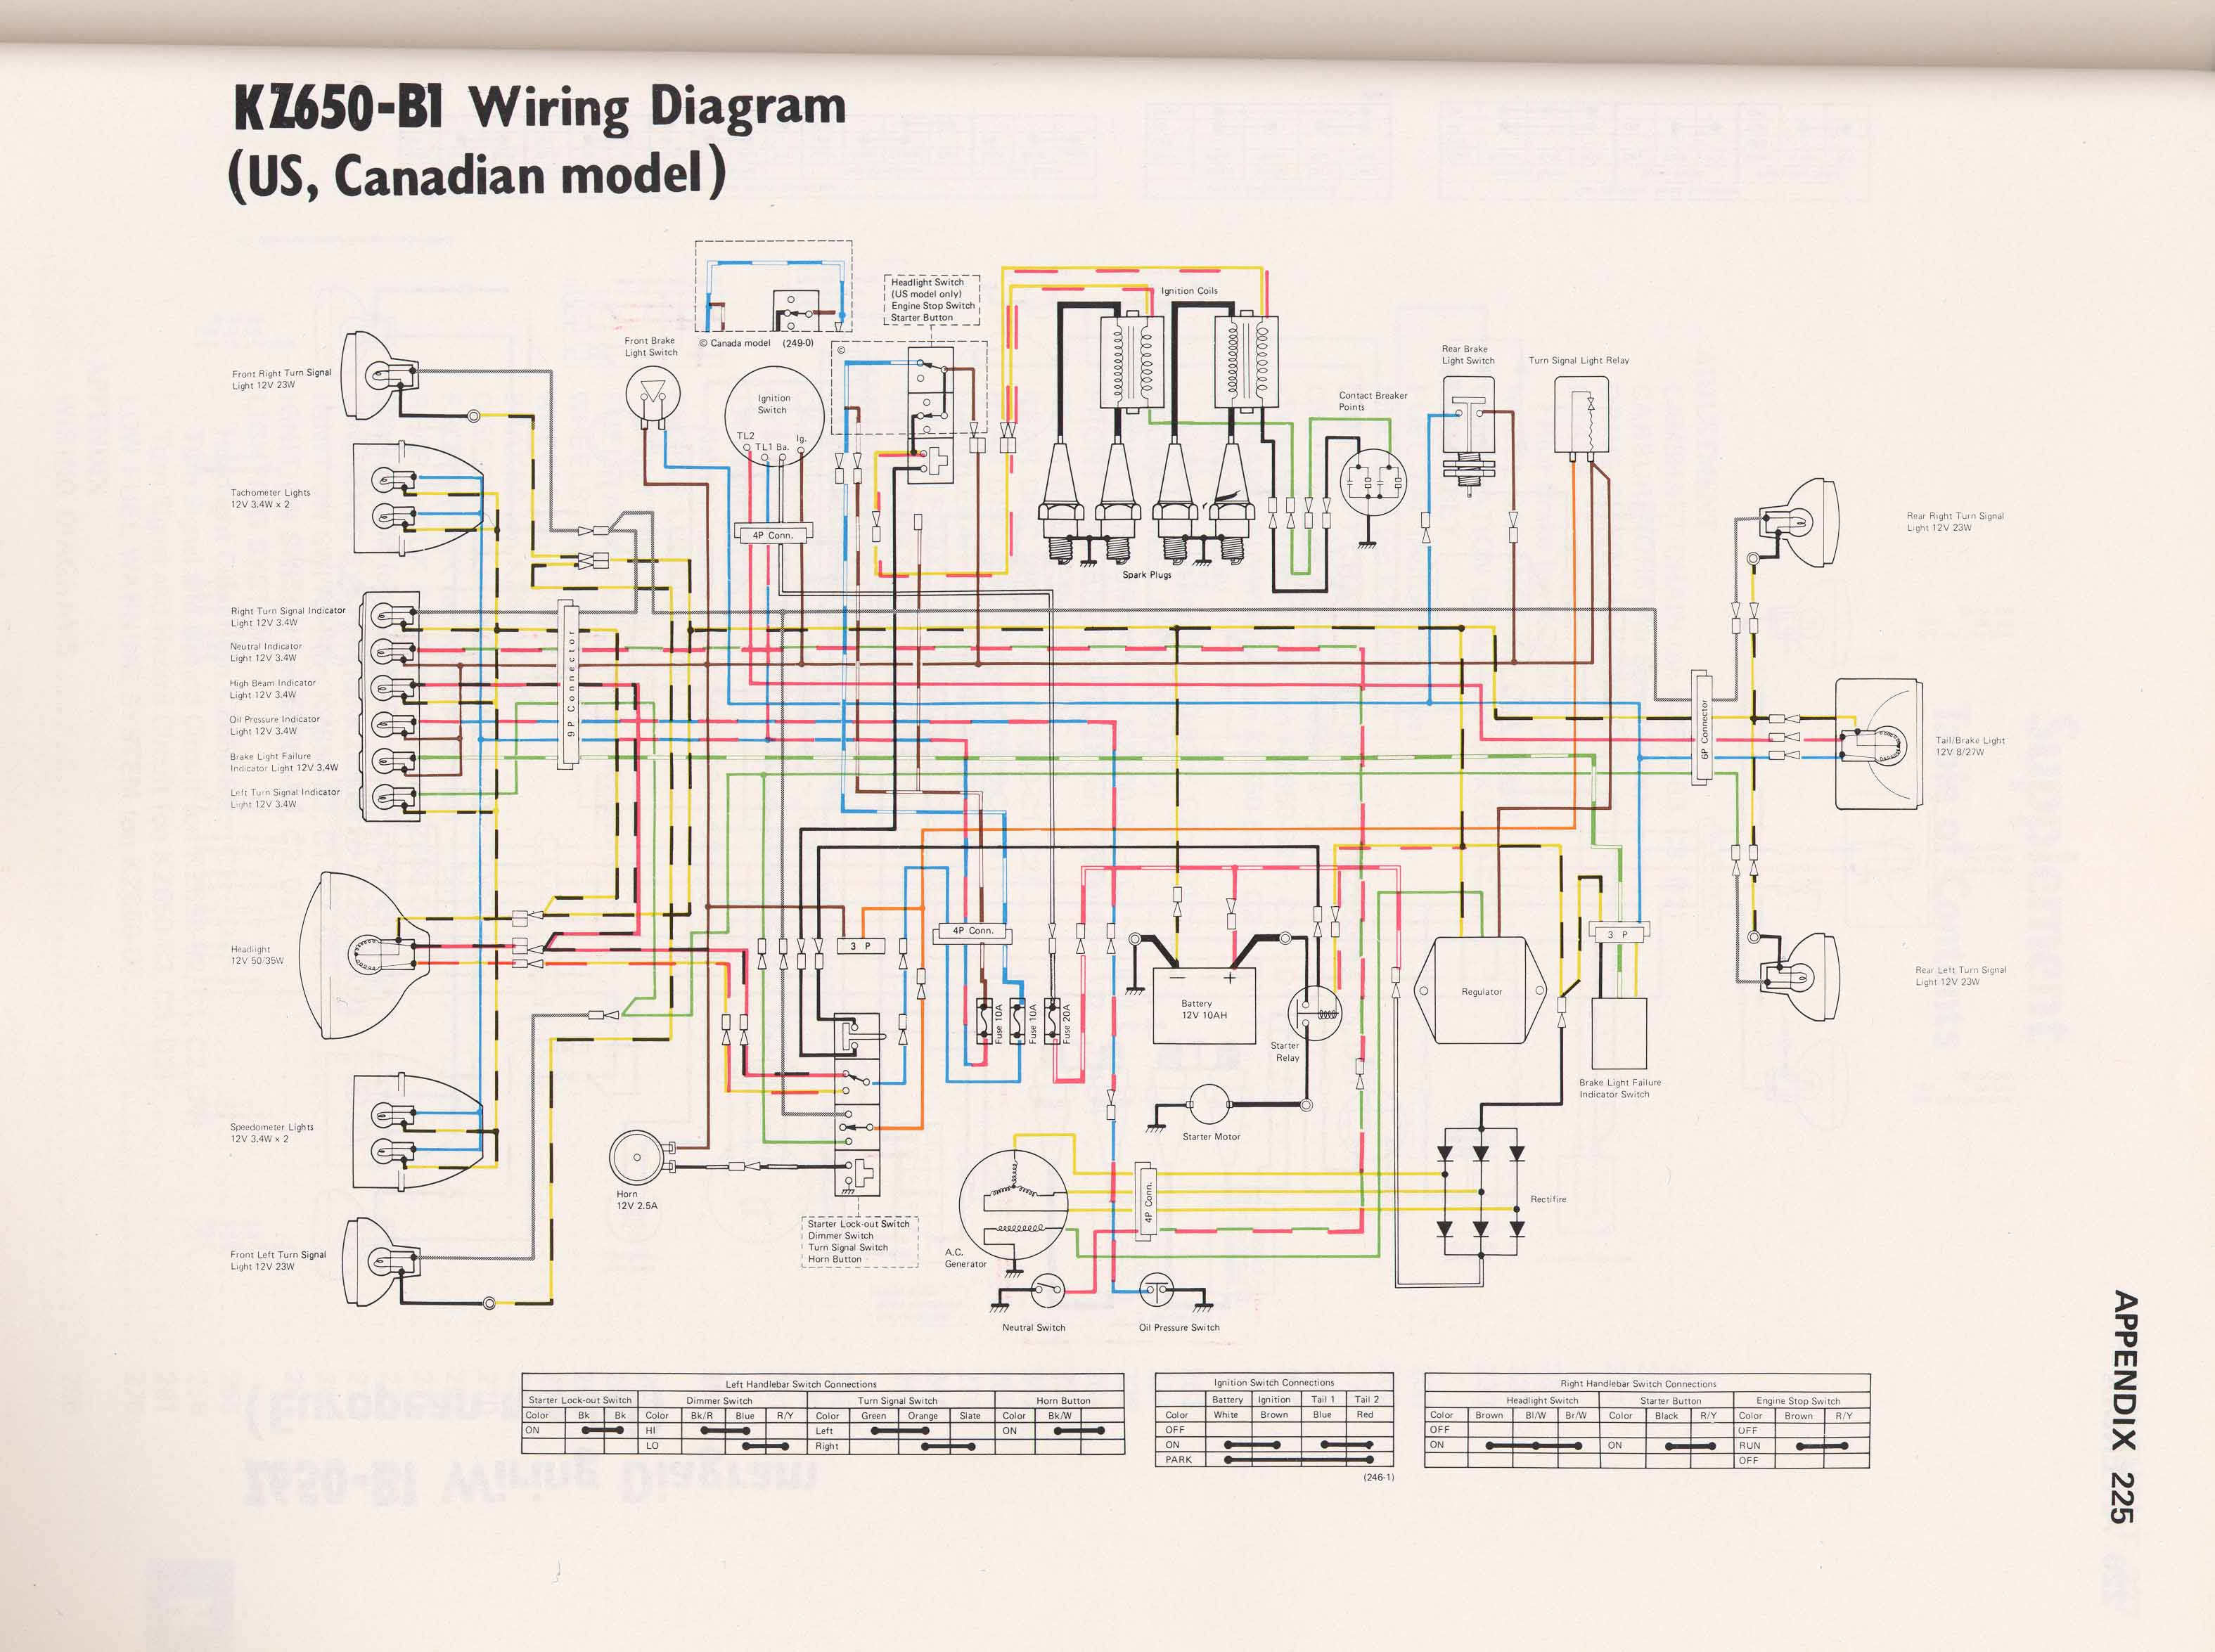 KZ650 B1 kz650 info wiring diagrams 1980 kz650 wiring diagram at alyssarenee.co